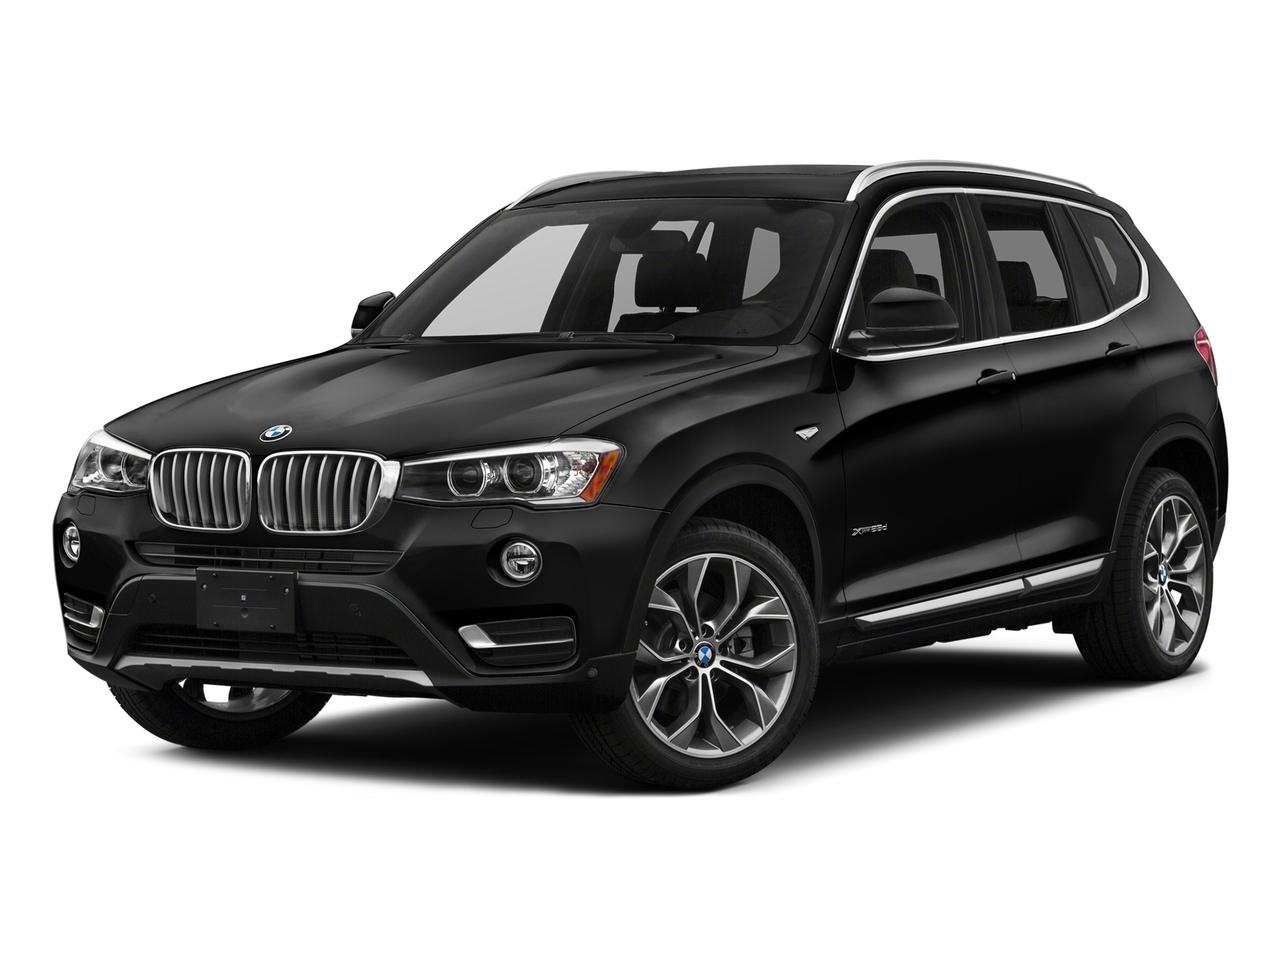 2017 BMW X3 xDrive35i Vehicle Photo in Muncy, PA 17756